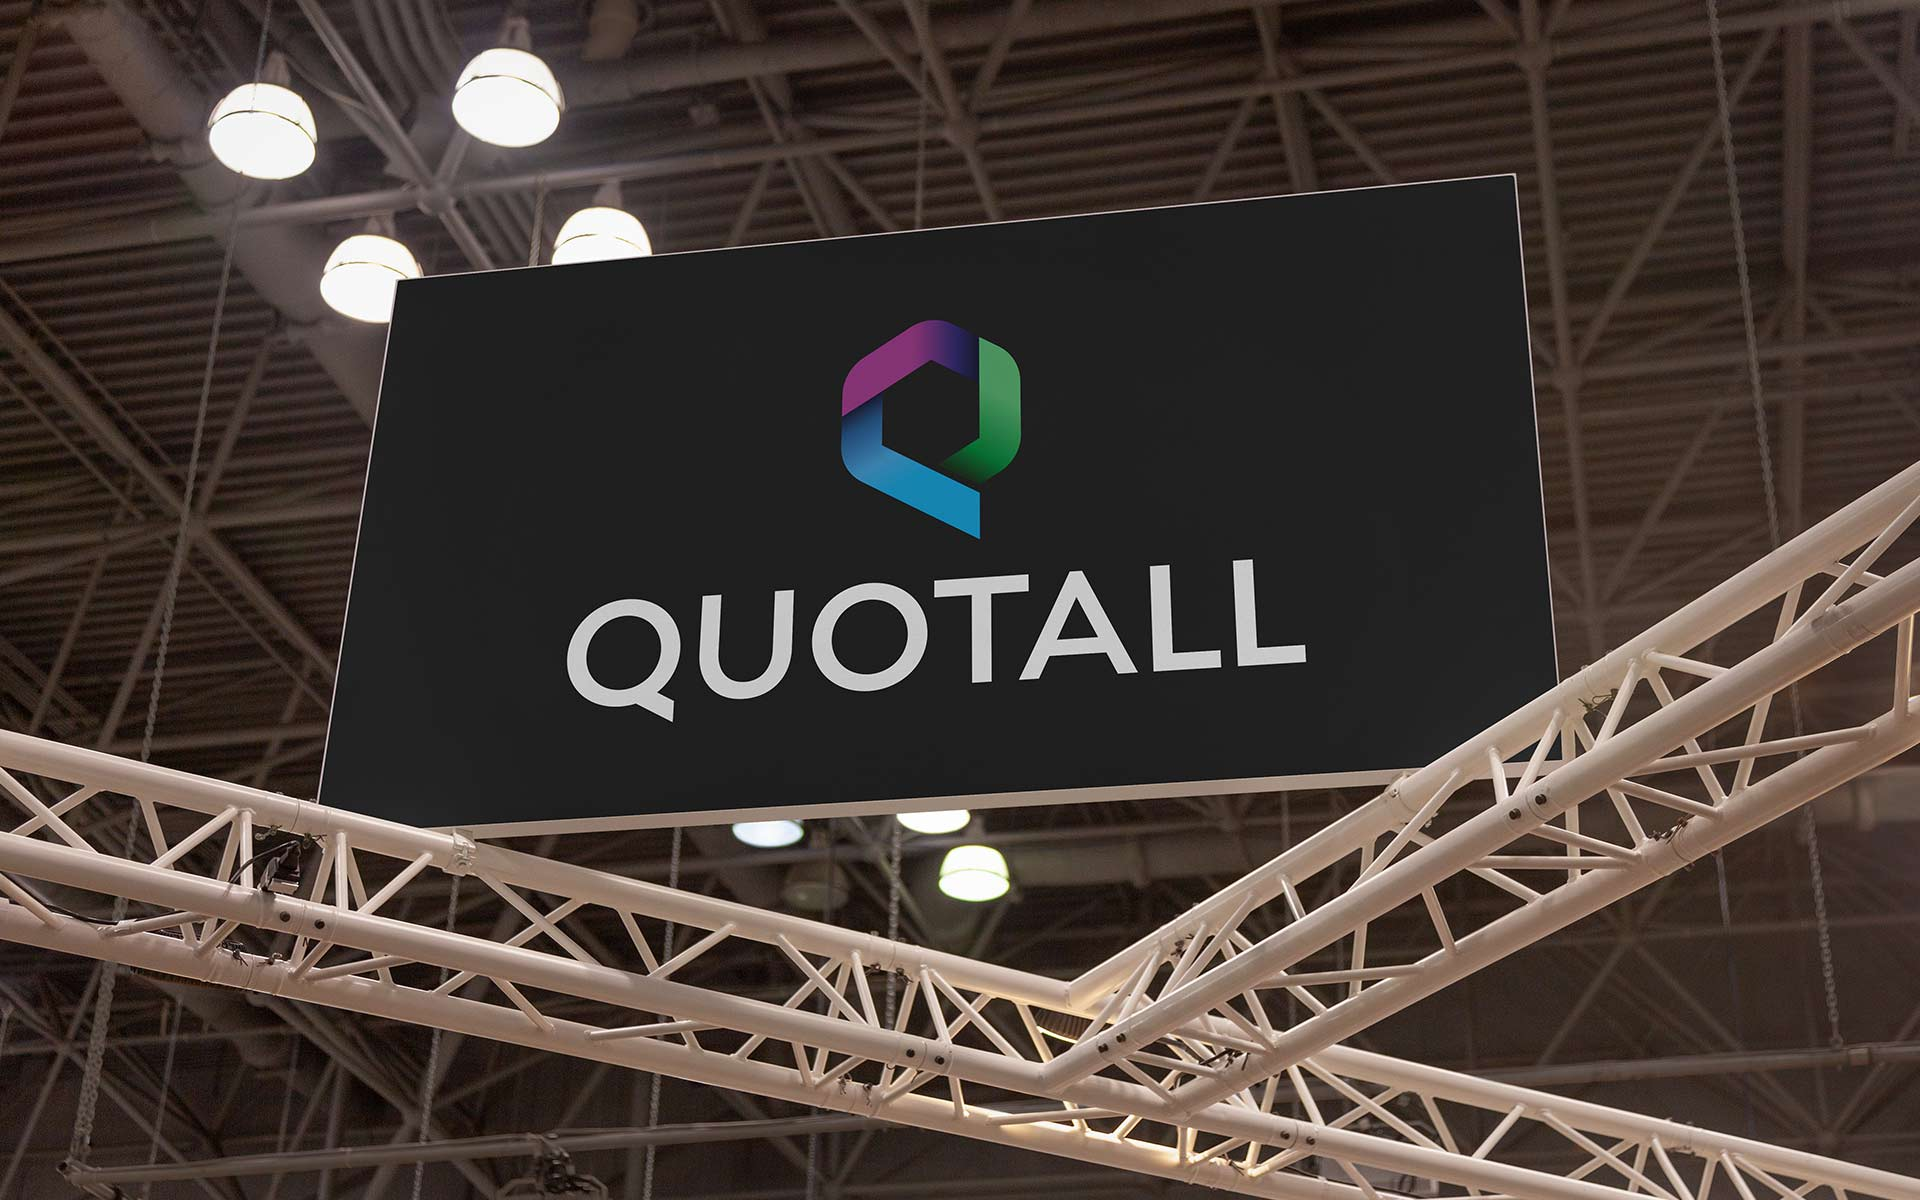 Quotall Insurance Logo Redesign on Graphic Panel